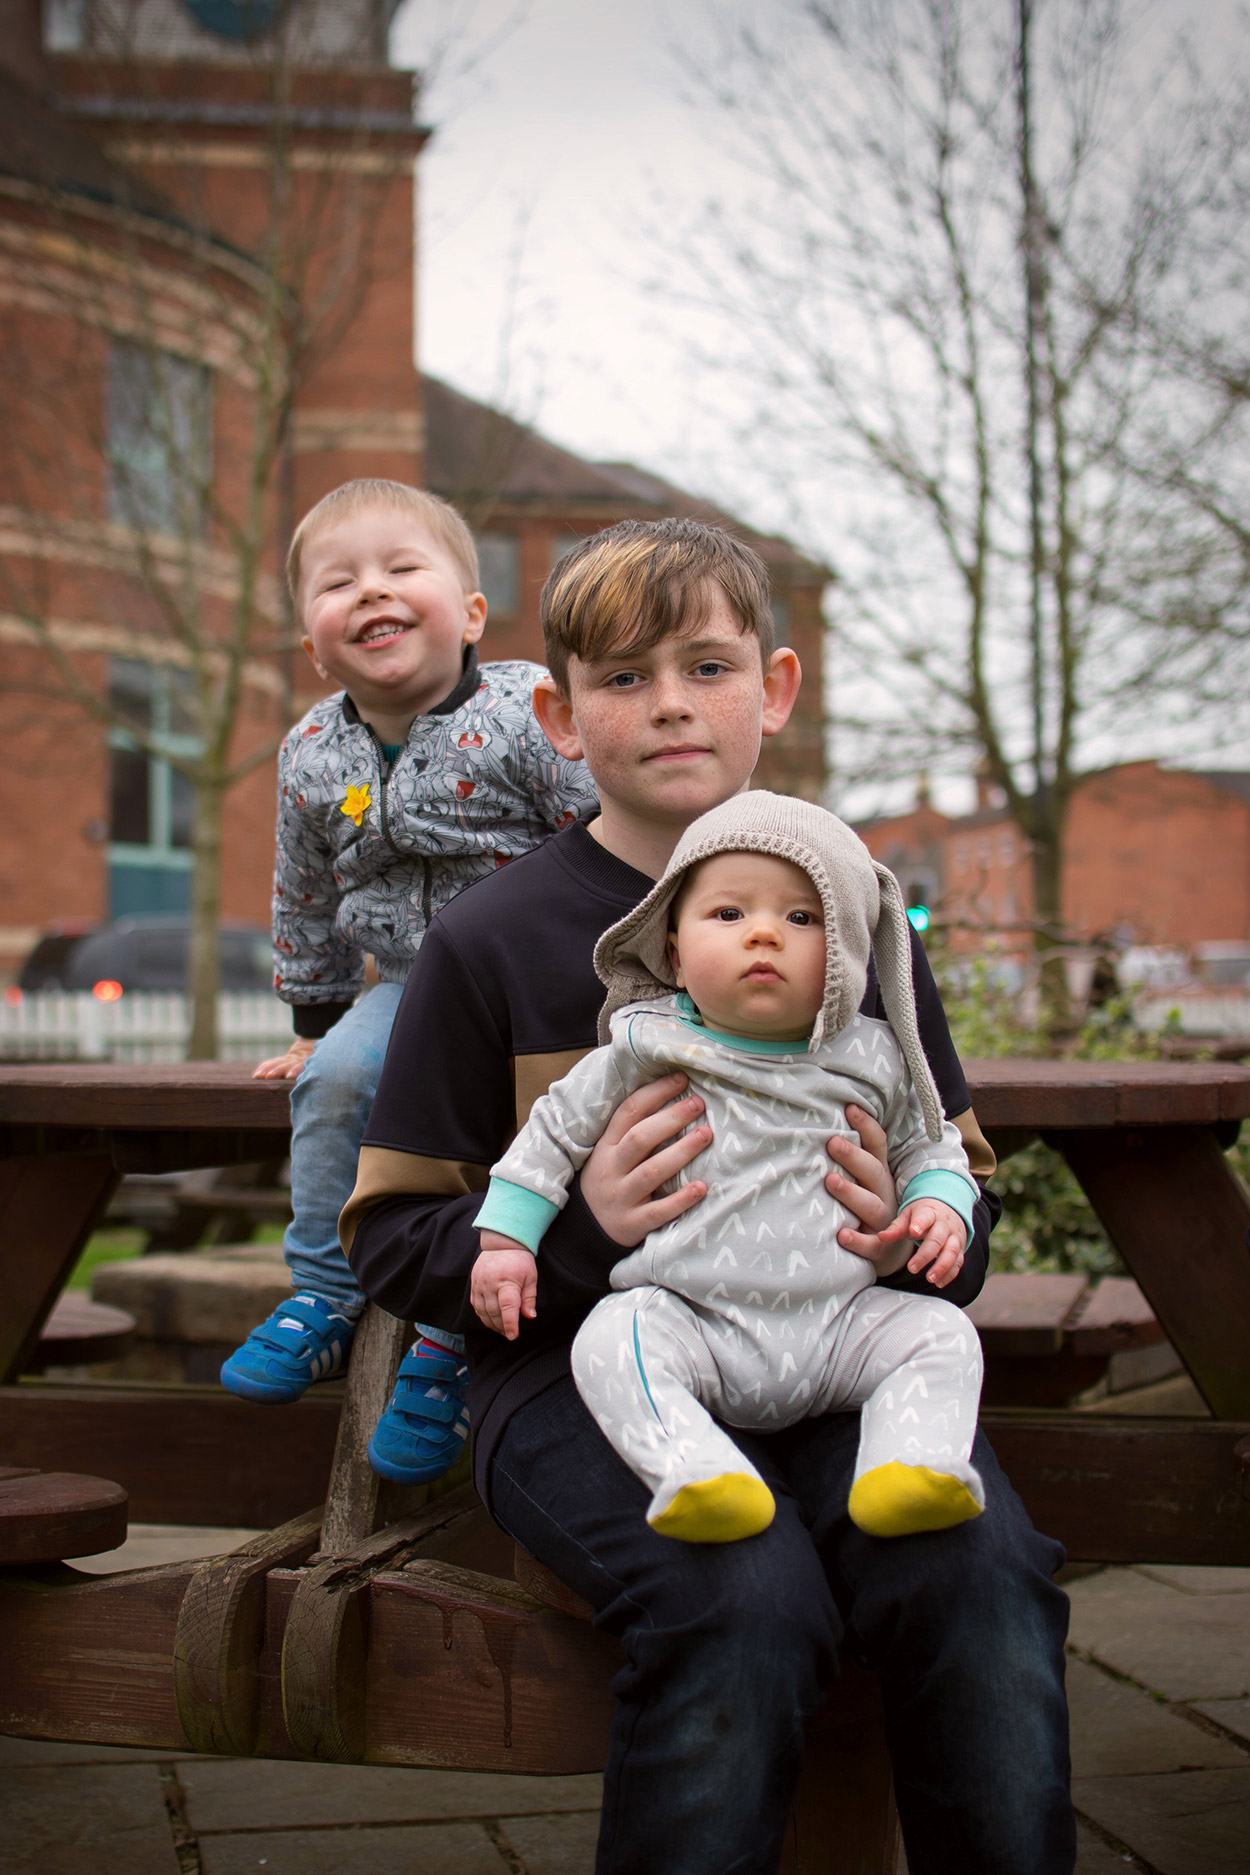 The Siblings Project {March 2017} - 11 year old, 3 year old and 7 month old baby brothers sitting together in Stratford-upon-Avon on a family day out for The Siblings Project with Dear Beautiful